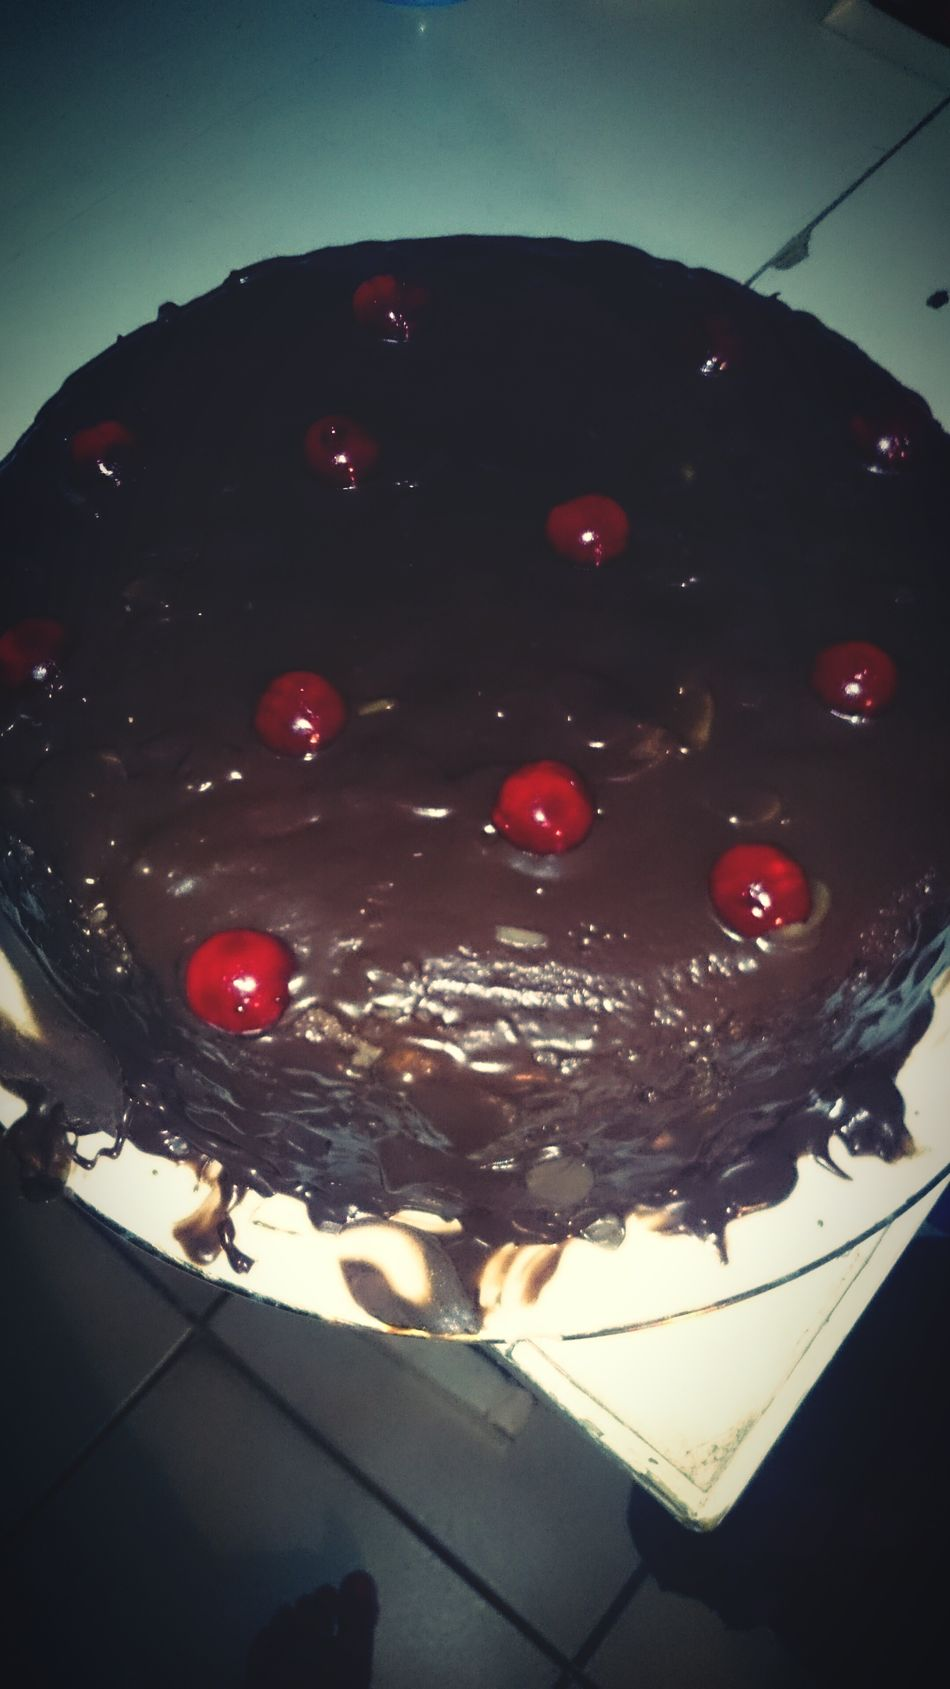 yummi cake Cake Yummi Almost Christmas Chocolate Hello Pic Of The Day Holidays Vacation Time Chill